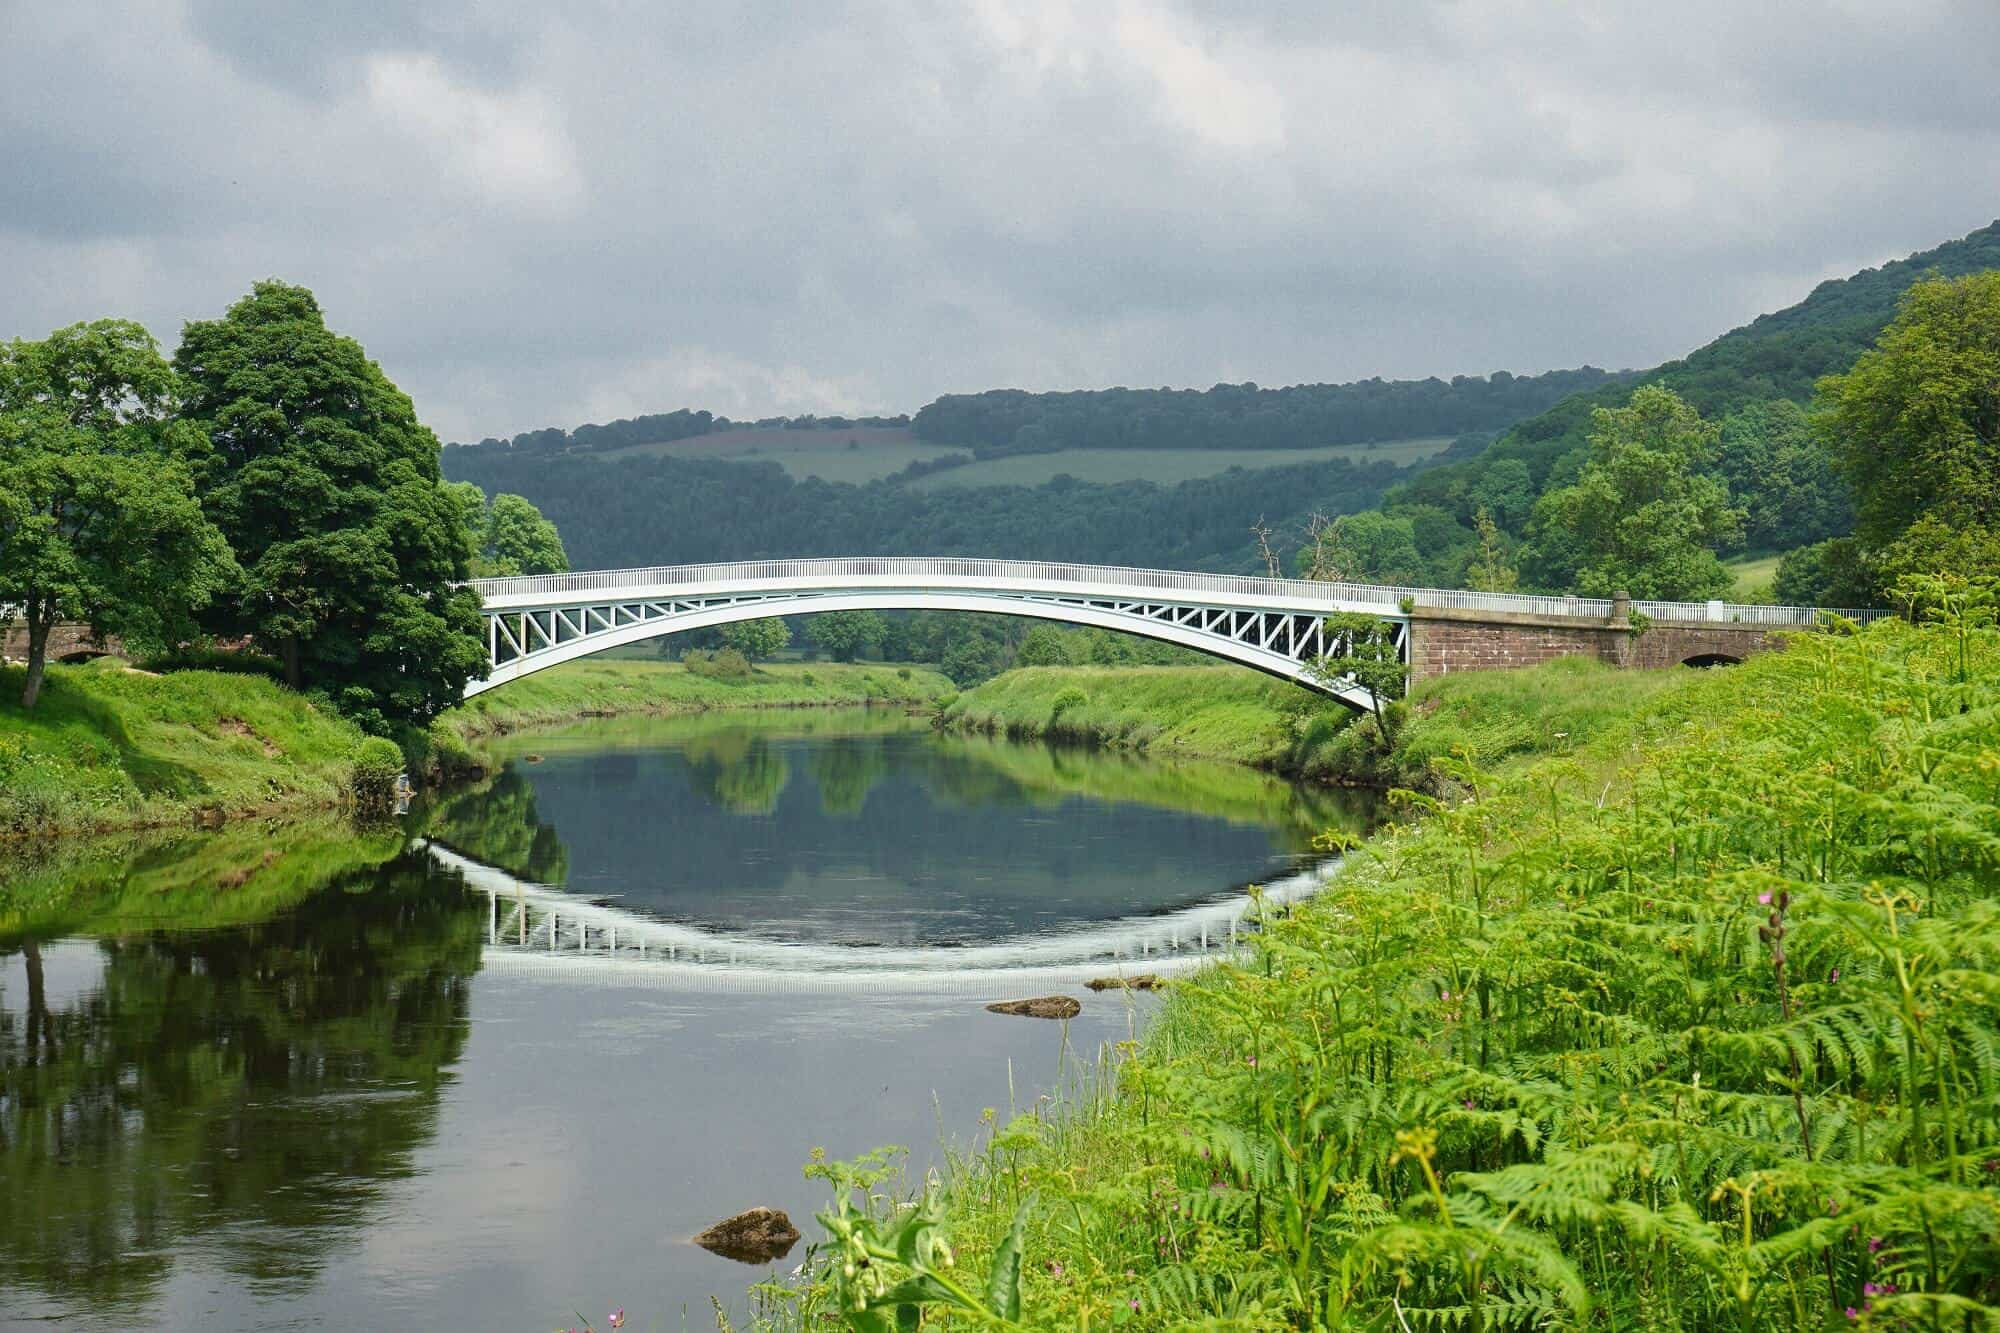 Bigsweir Bridge on the Offa's Dyke Path